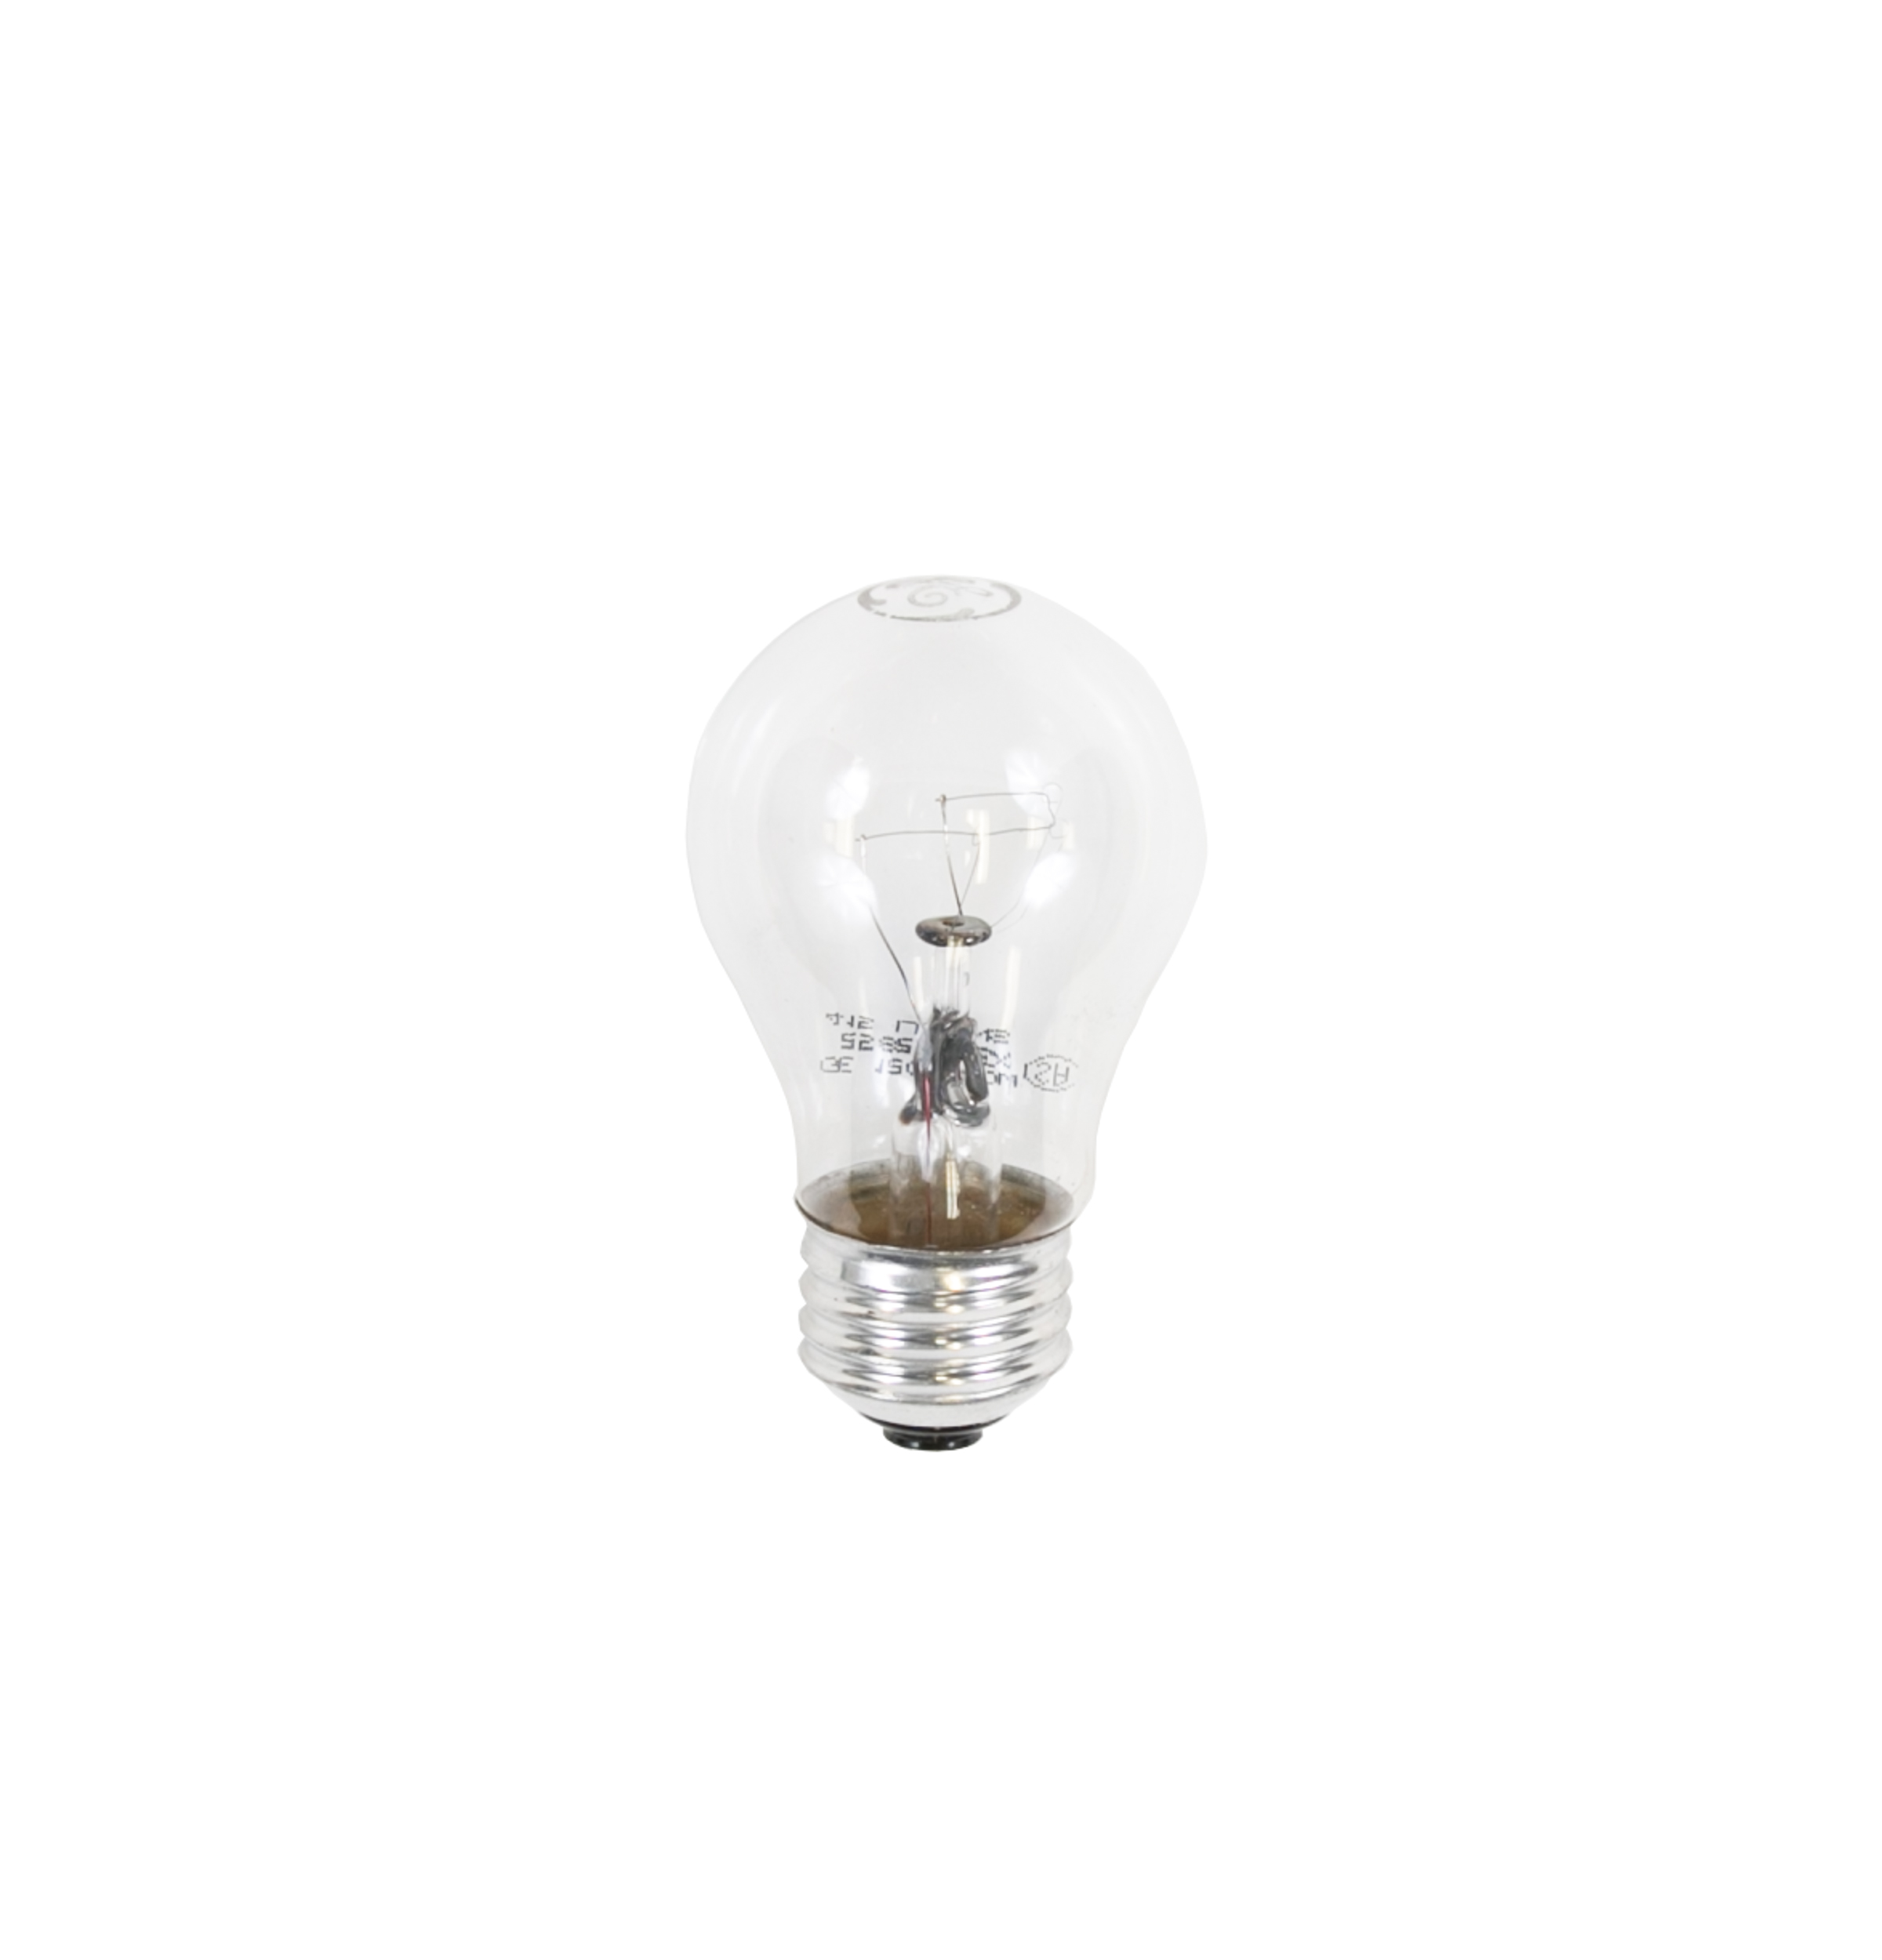 40A15 | Bulb - 40W, 15 Amp | GE Appliances Parts